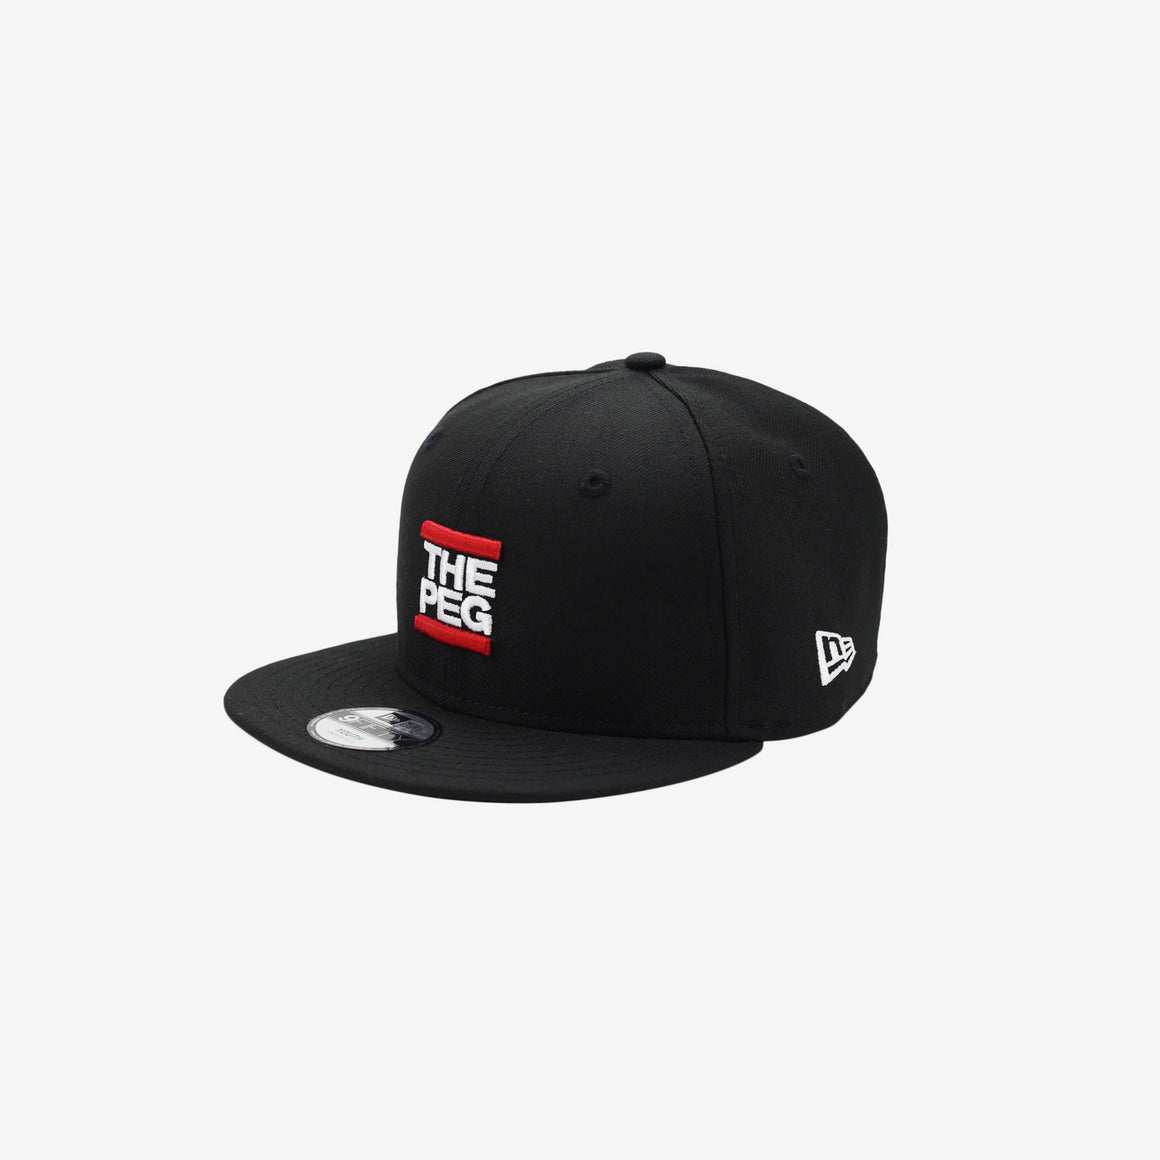 New Era Youth 9FIFTY (Black Original)